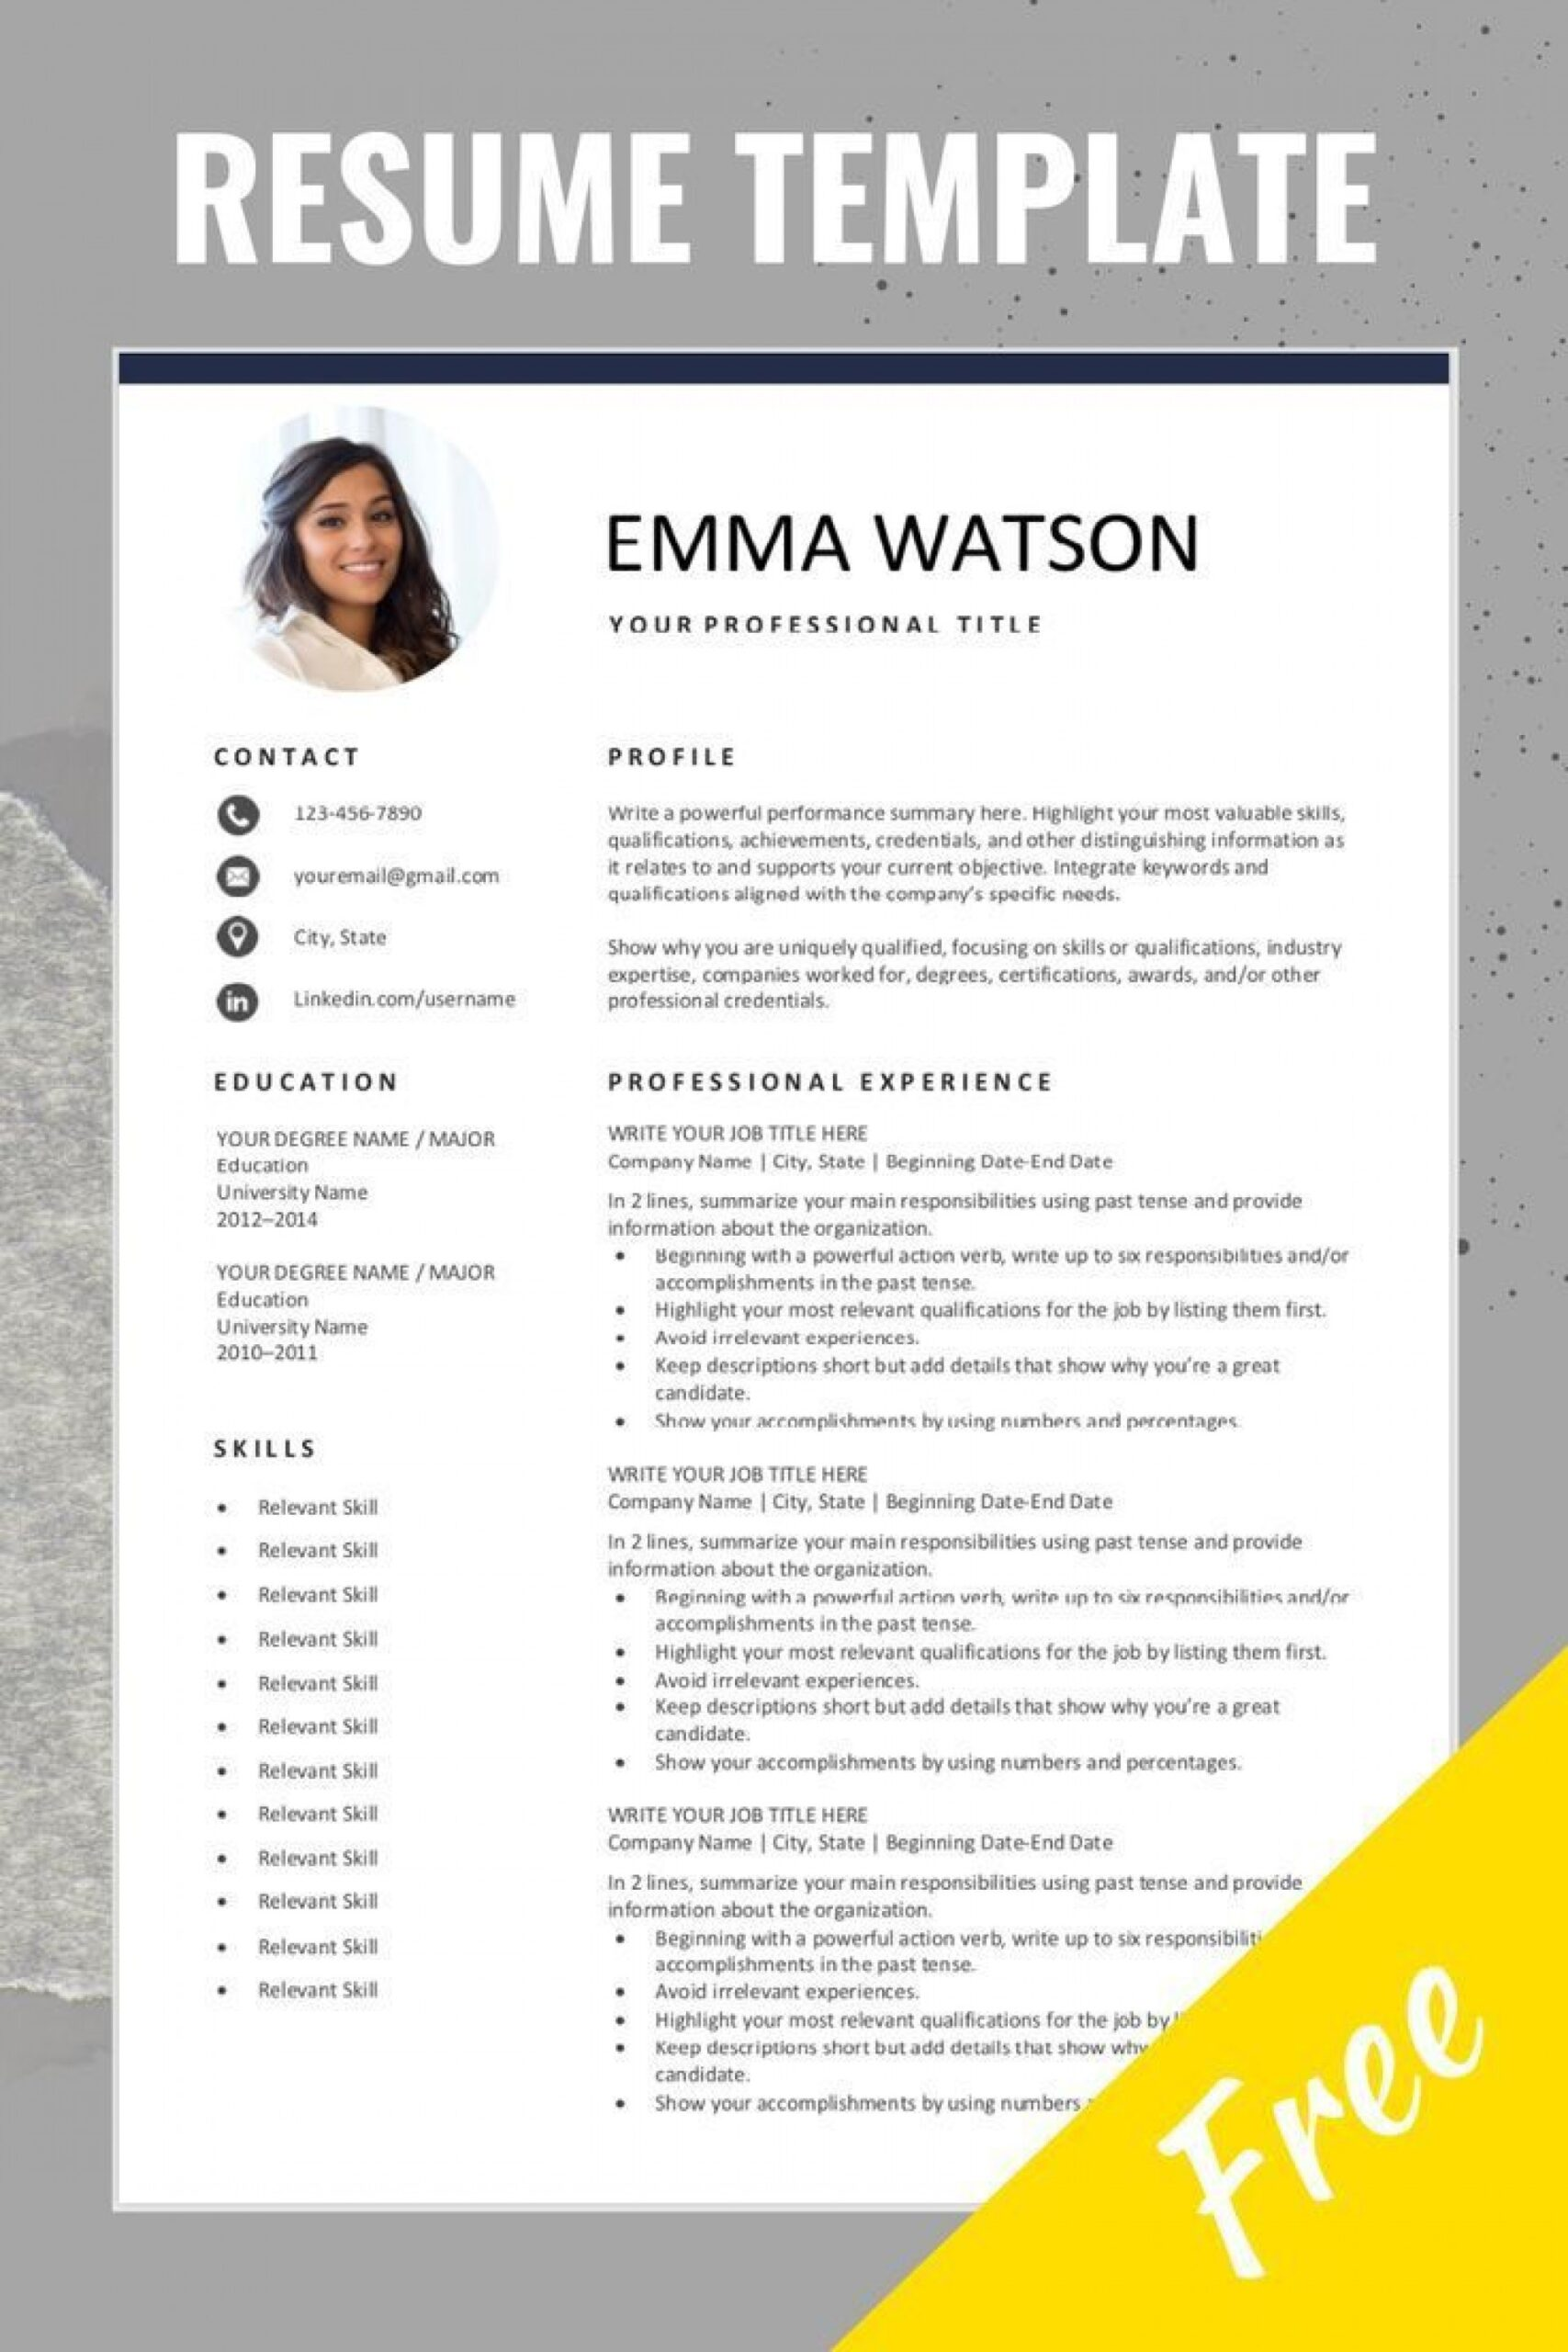 teacher resume template free addictionary editable unforgettable templates inspirations Resume Editable Teacher Resume Template Free